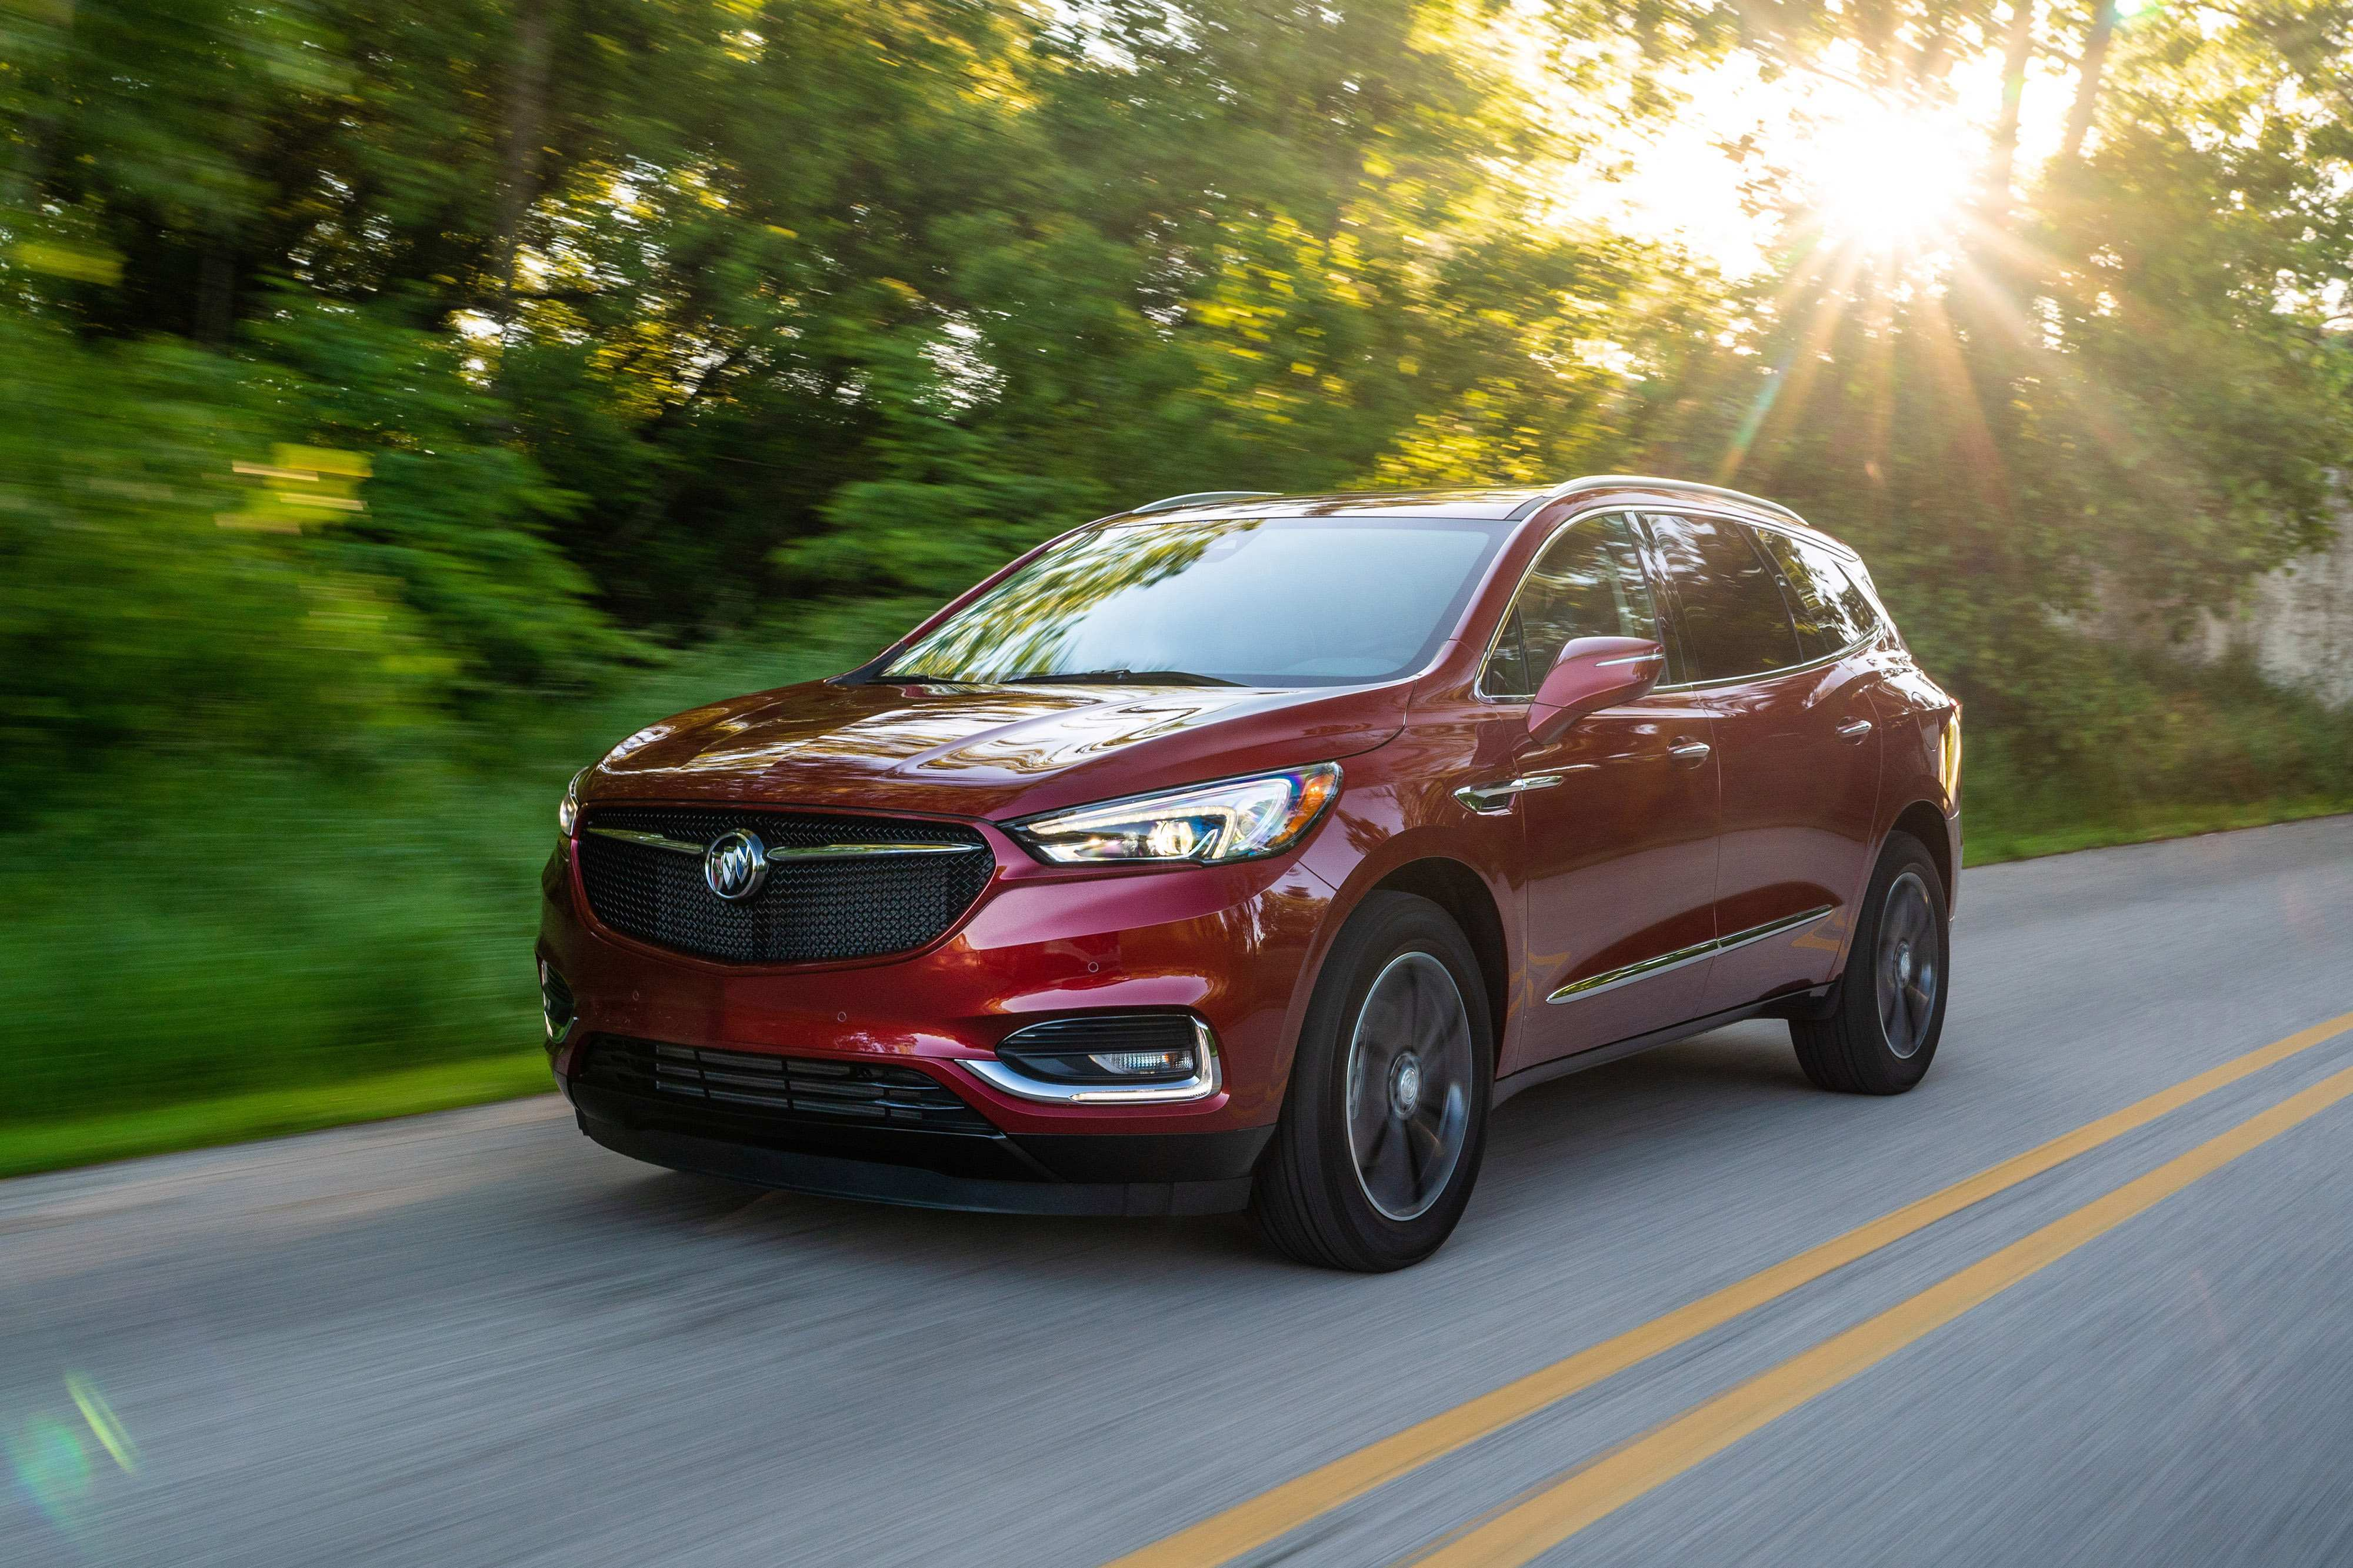 61 Best Review When Will The 2020 Buick Encore Be Available Spesification with When Will The 2020 Buick Encore Be Available